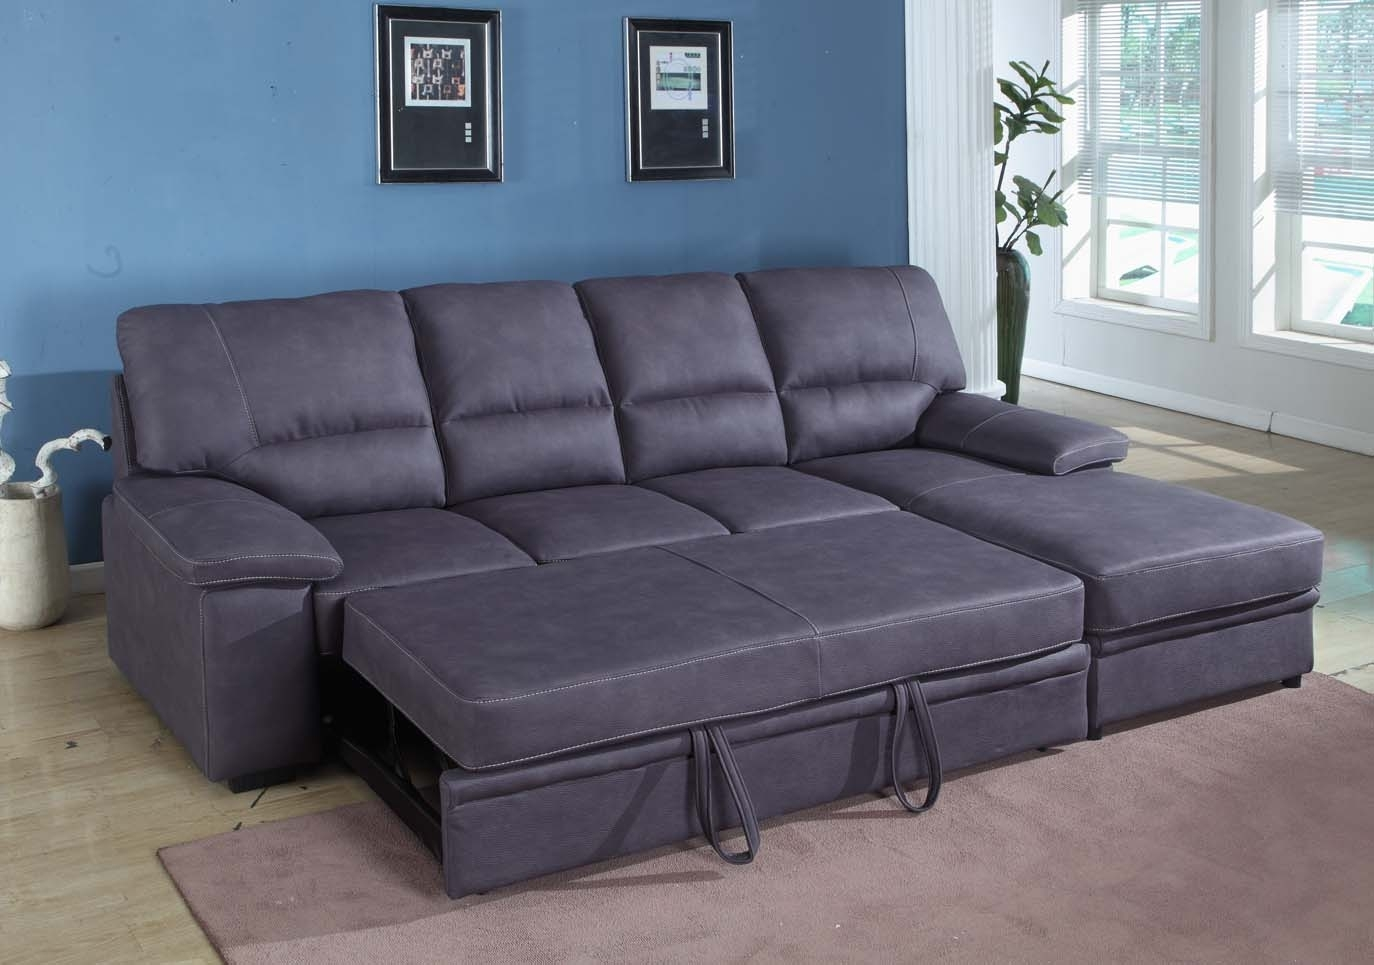 Seating Furniture – Sleeper Sectional Sofa – Pickndecor With Regard To Lucy Dark Grey 2 Piece Sleeper Sectionals With Laf Chaise (View 11 of 25)